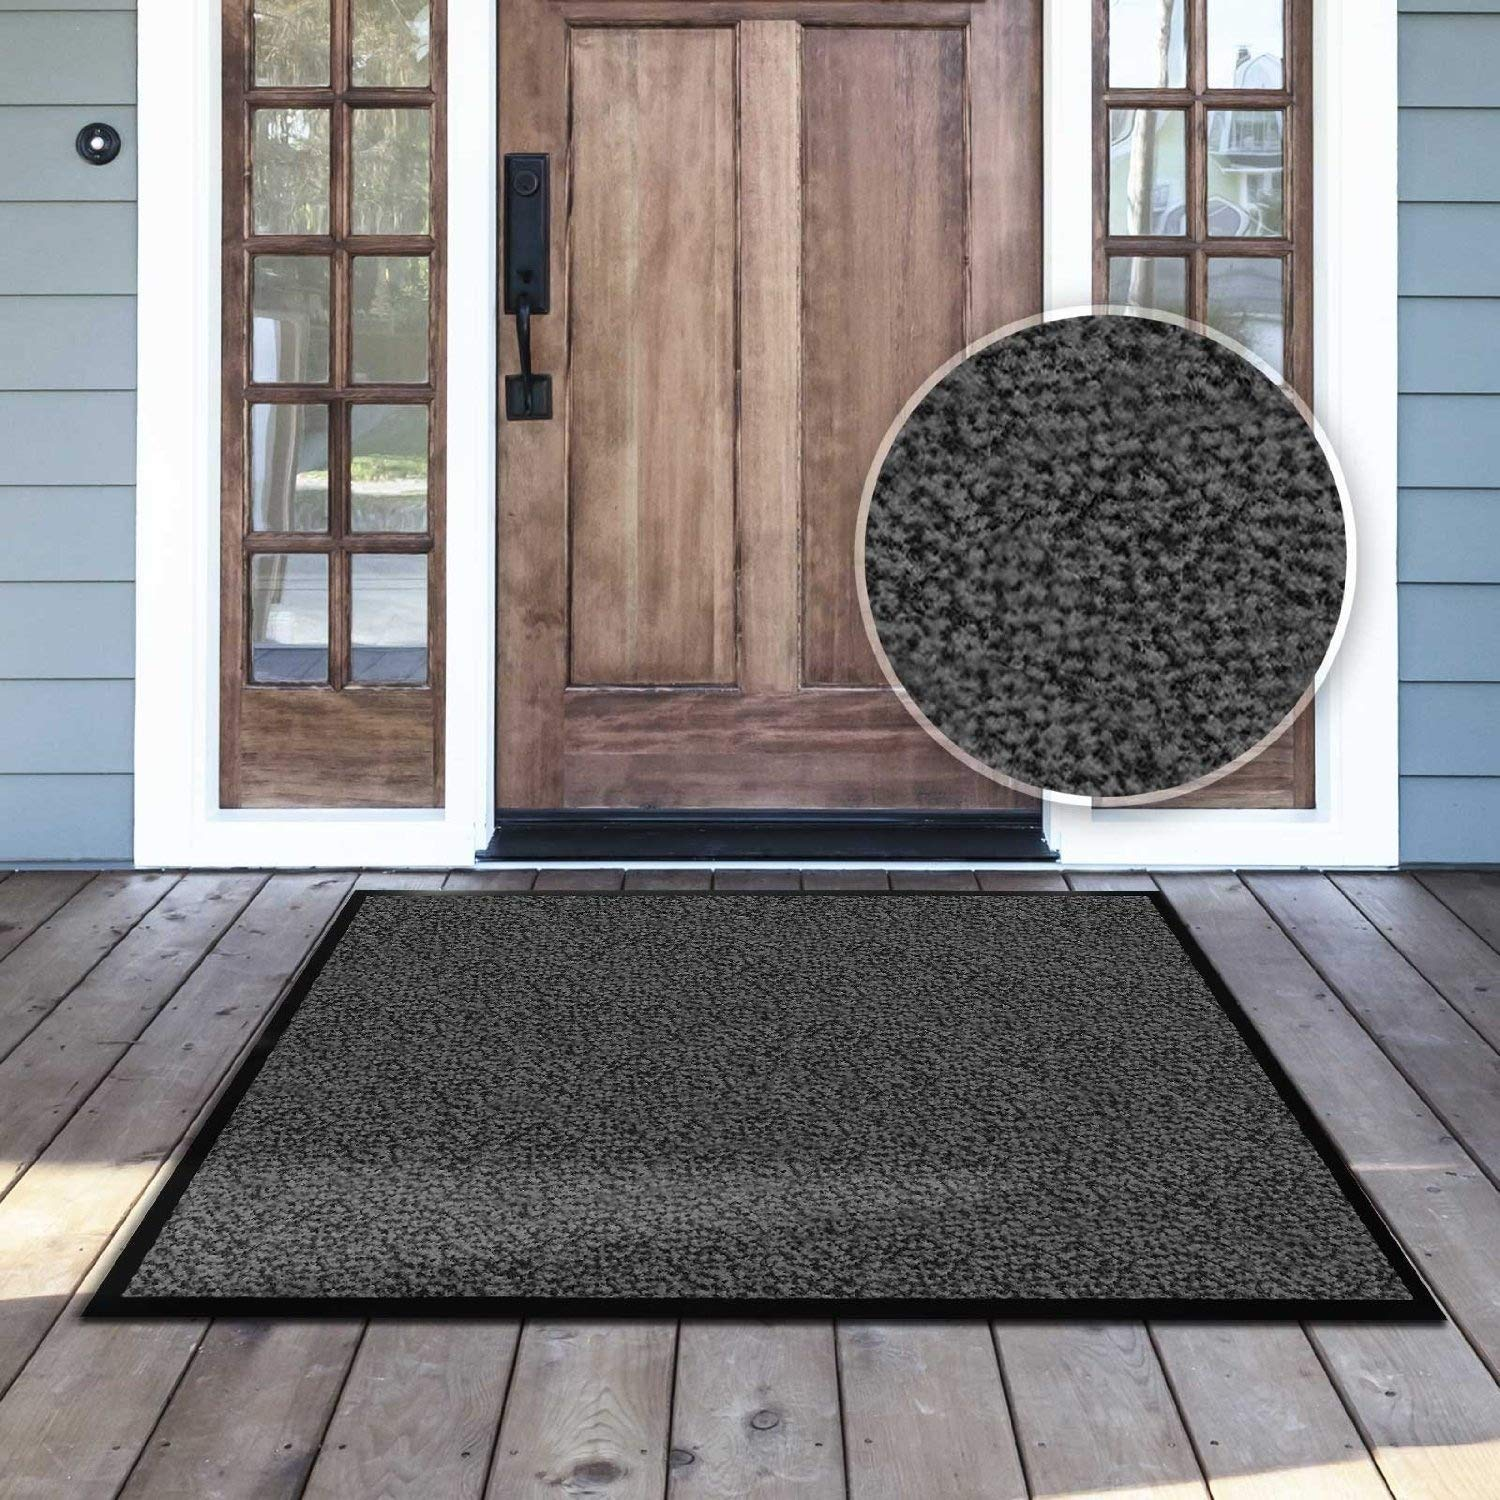 casa pura Carpet Entrance Mat, Gray (Mottled) 24'' x 36'' | Absorbent, Non-slip, Indoor/Outdoor (Multiple Sizes)